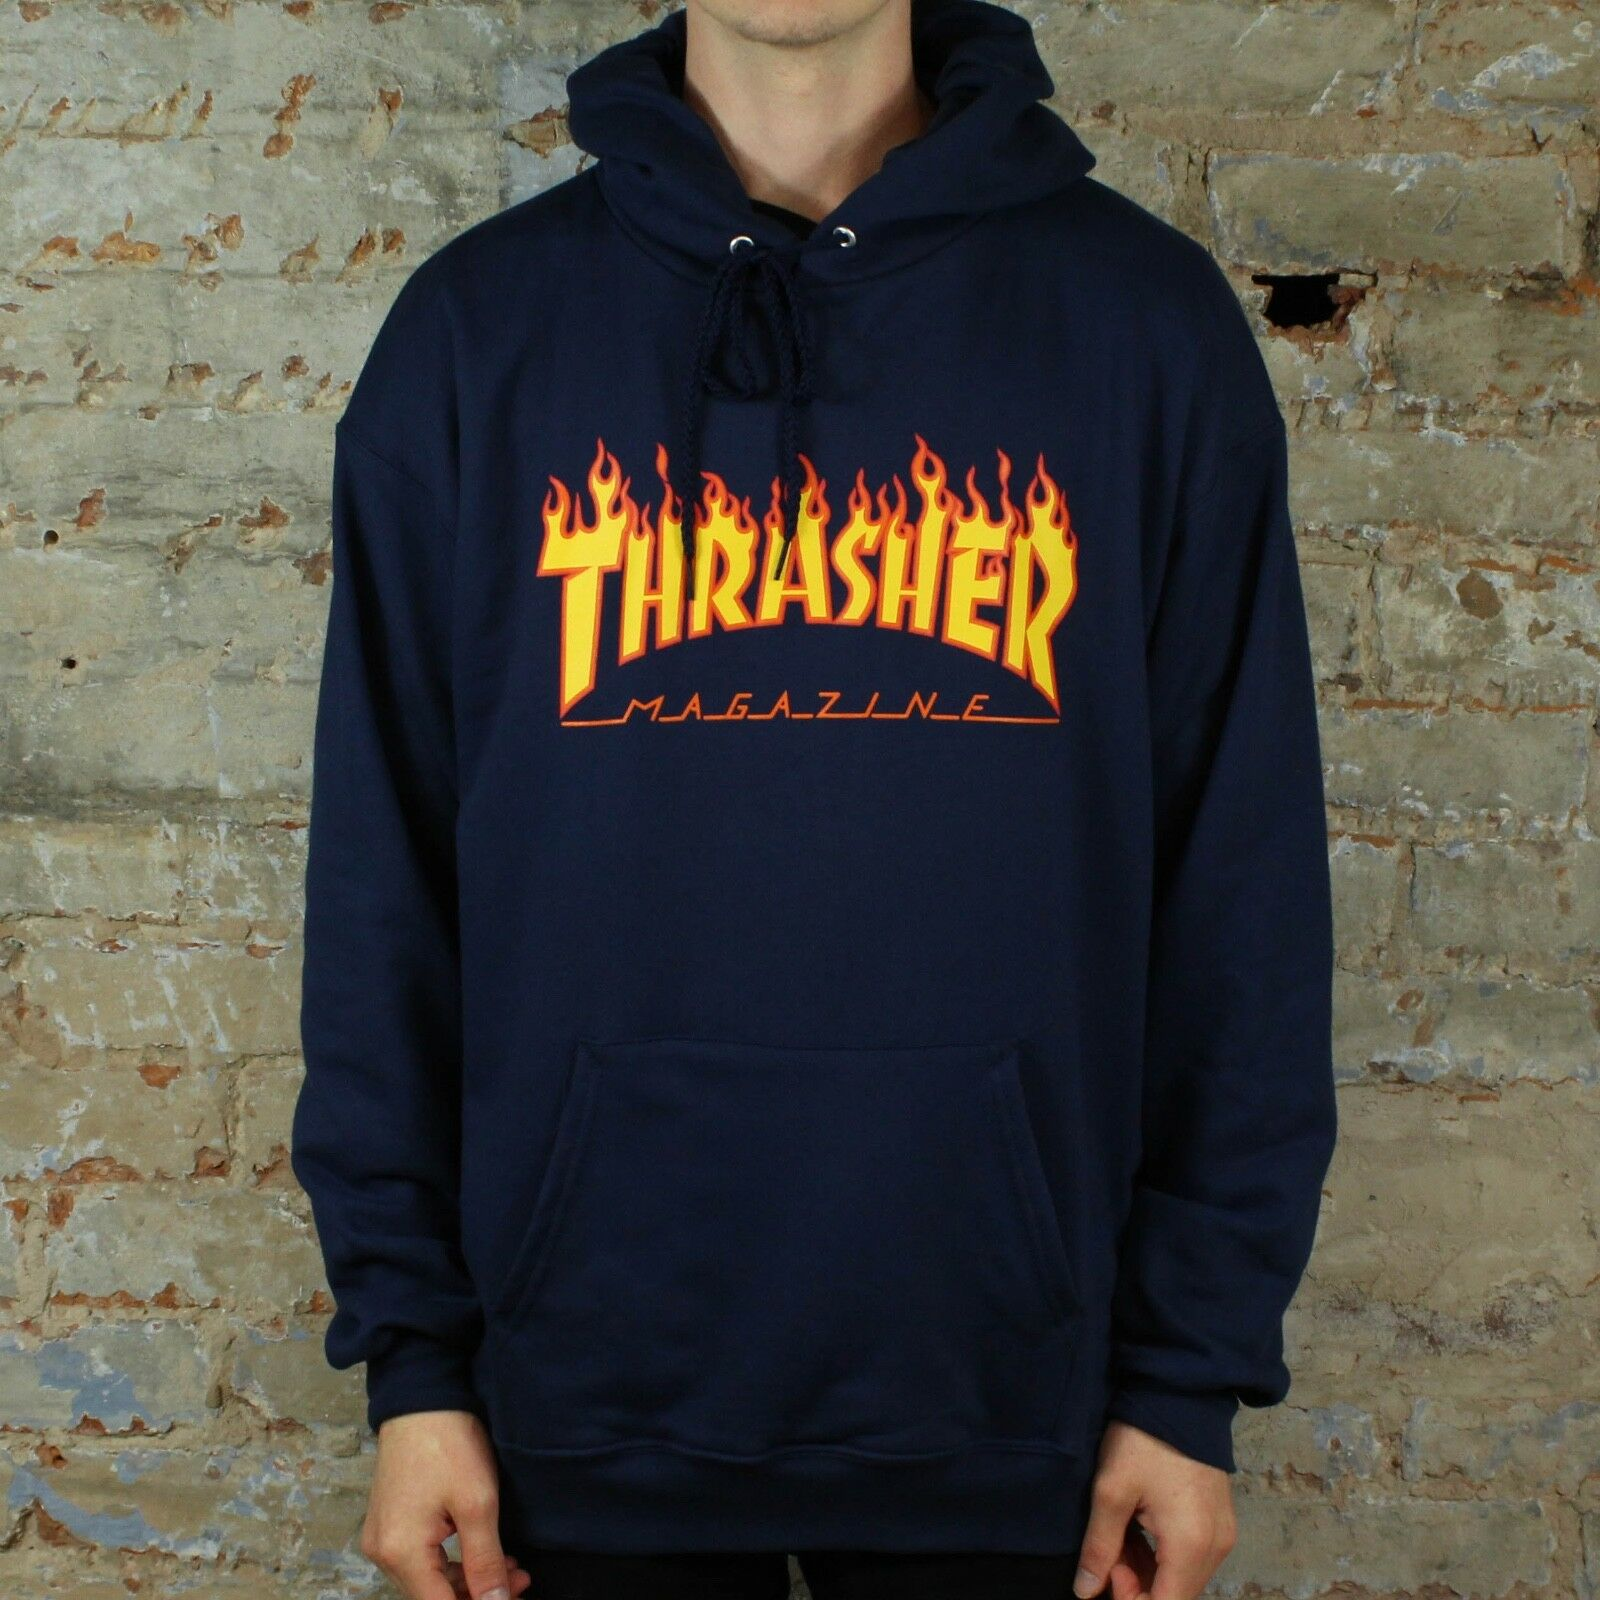 Details about Thrasher Flame Logo Pullover Hooded Sweatshirt.